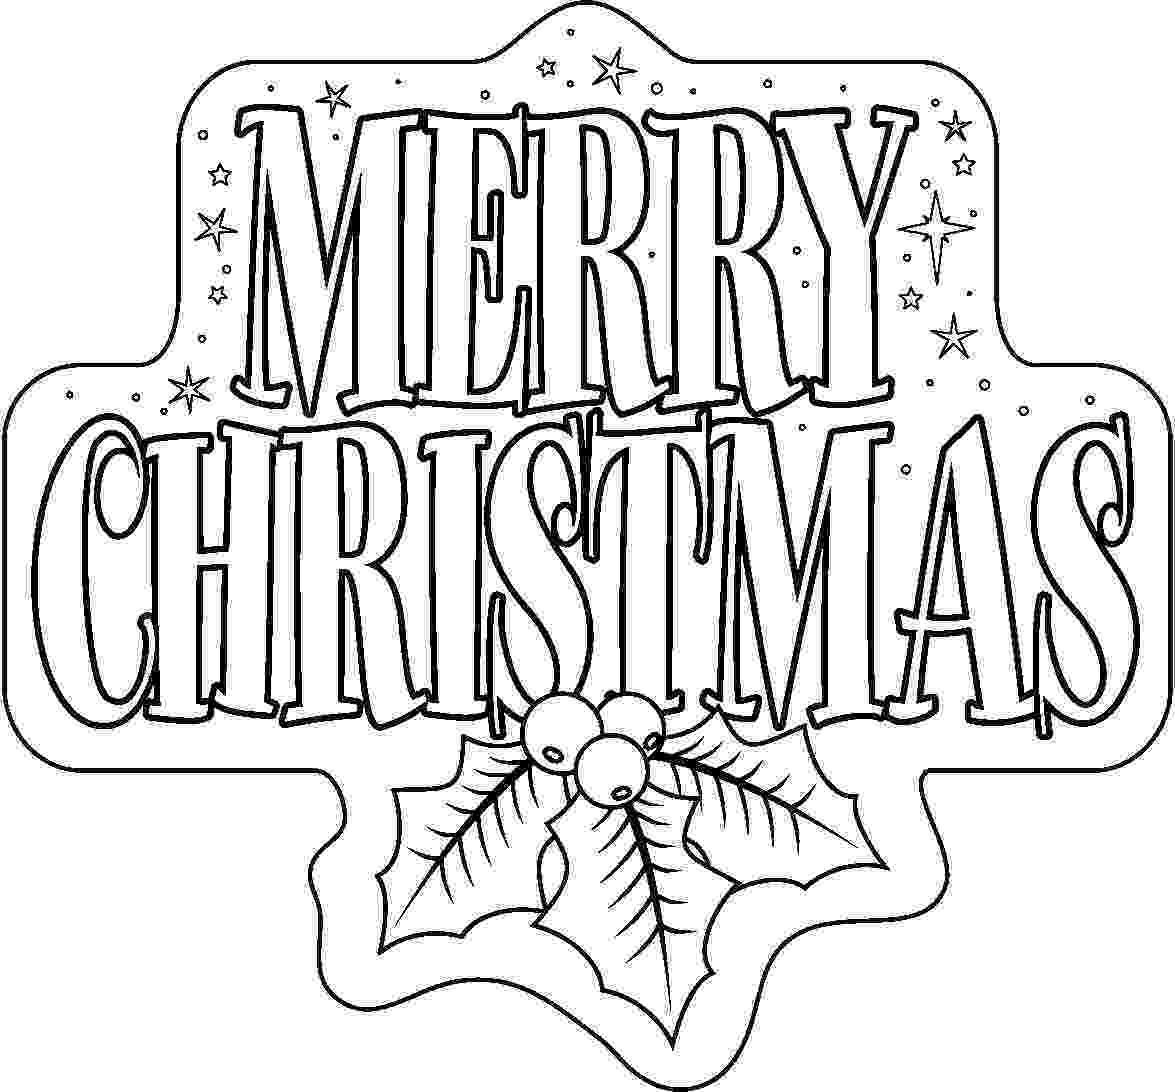 christmas coloring pages to print free santa in sleigh coloring pages download and print for free print pages coloring free christmas to